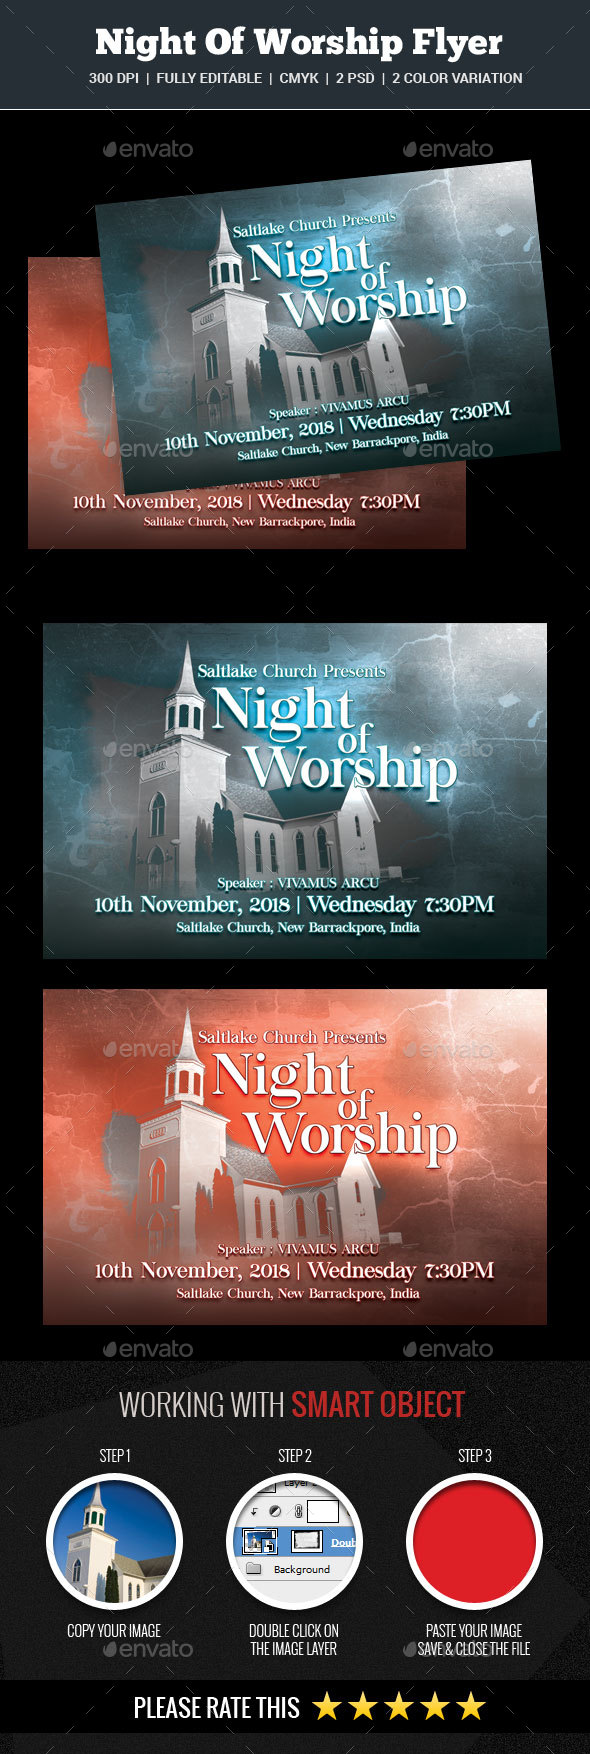 Night Of Worship Flyer - Church Flyers